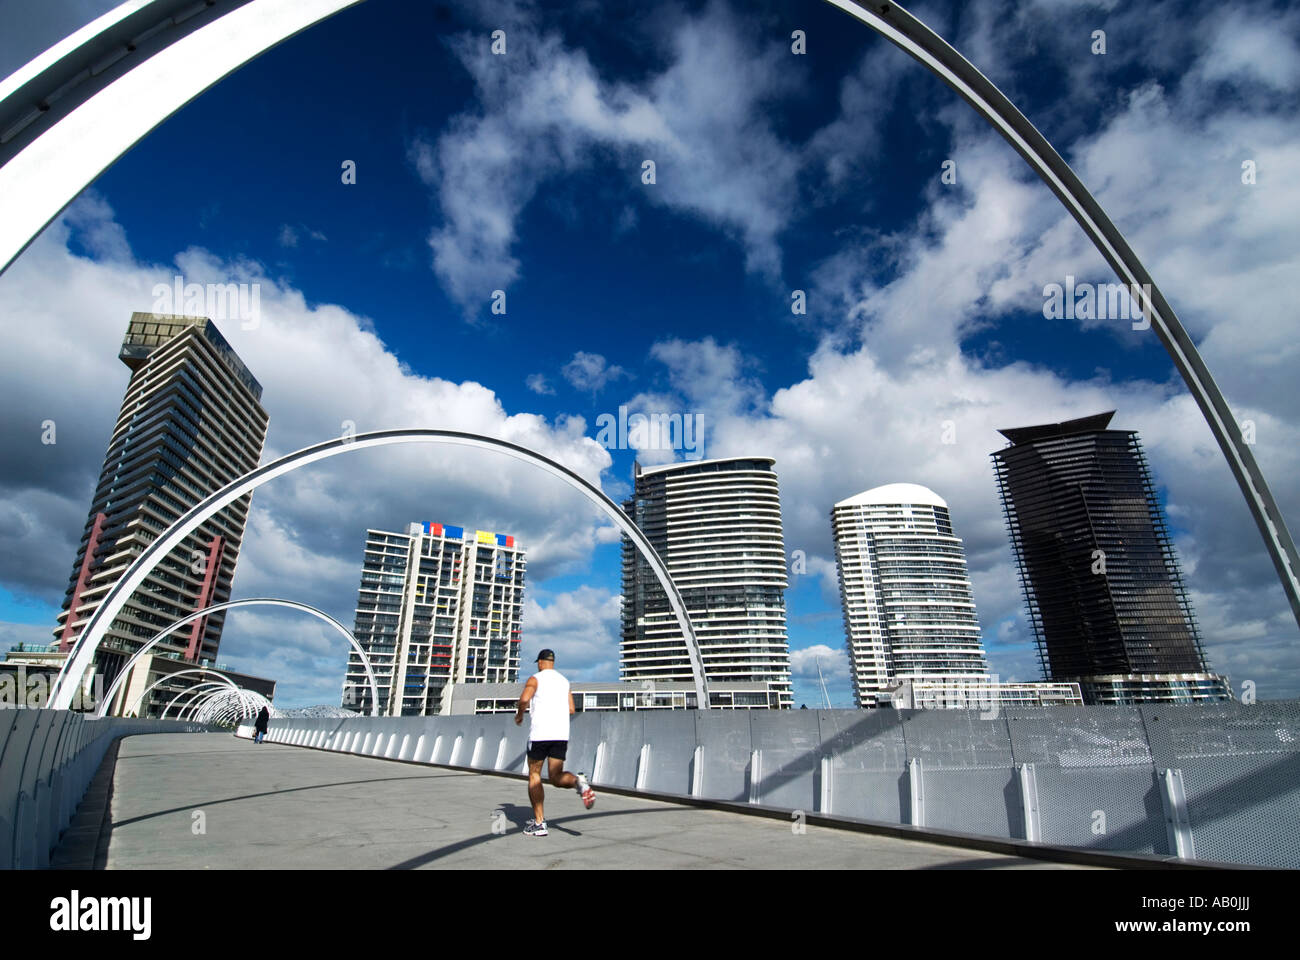 View of spectacular steel Webb Bridge over Yarra River and new apartment buildings in Docklands Melbourne Australia - Stock Image